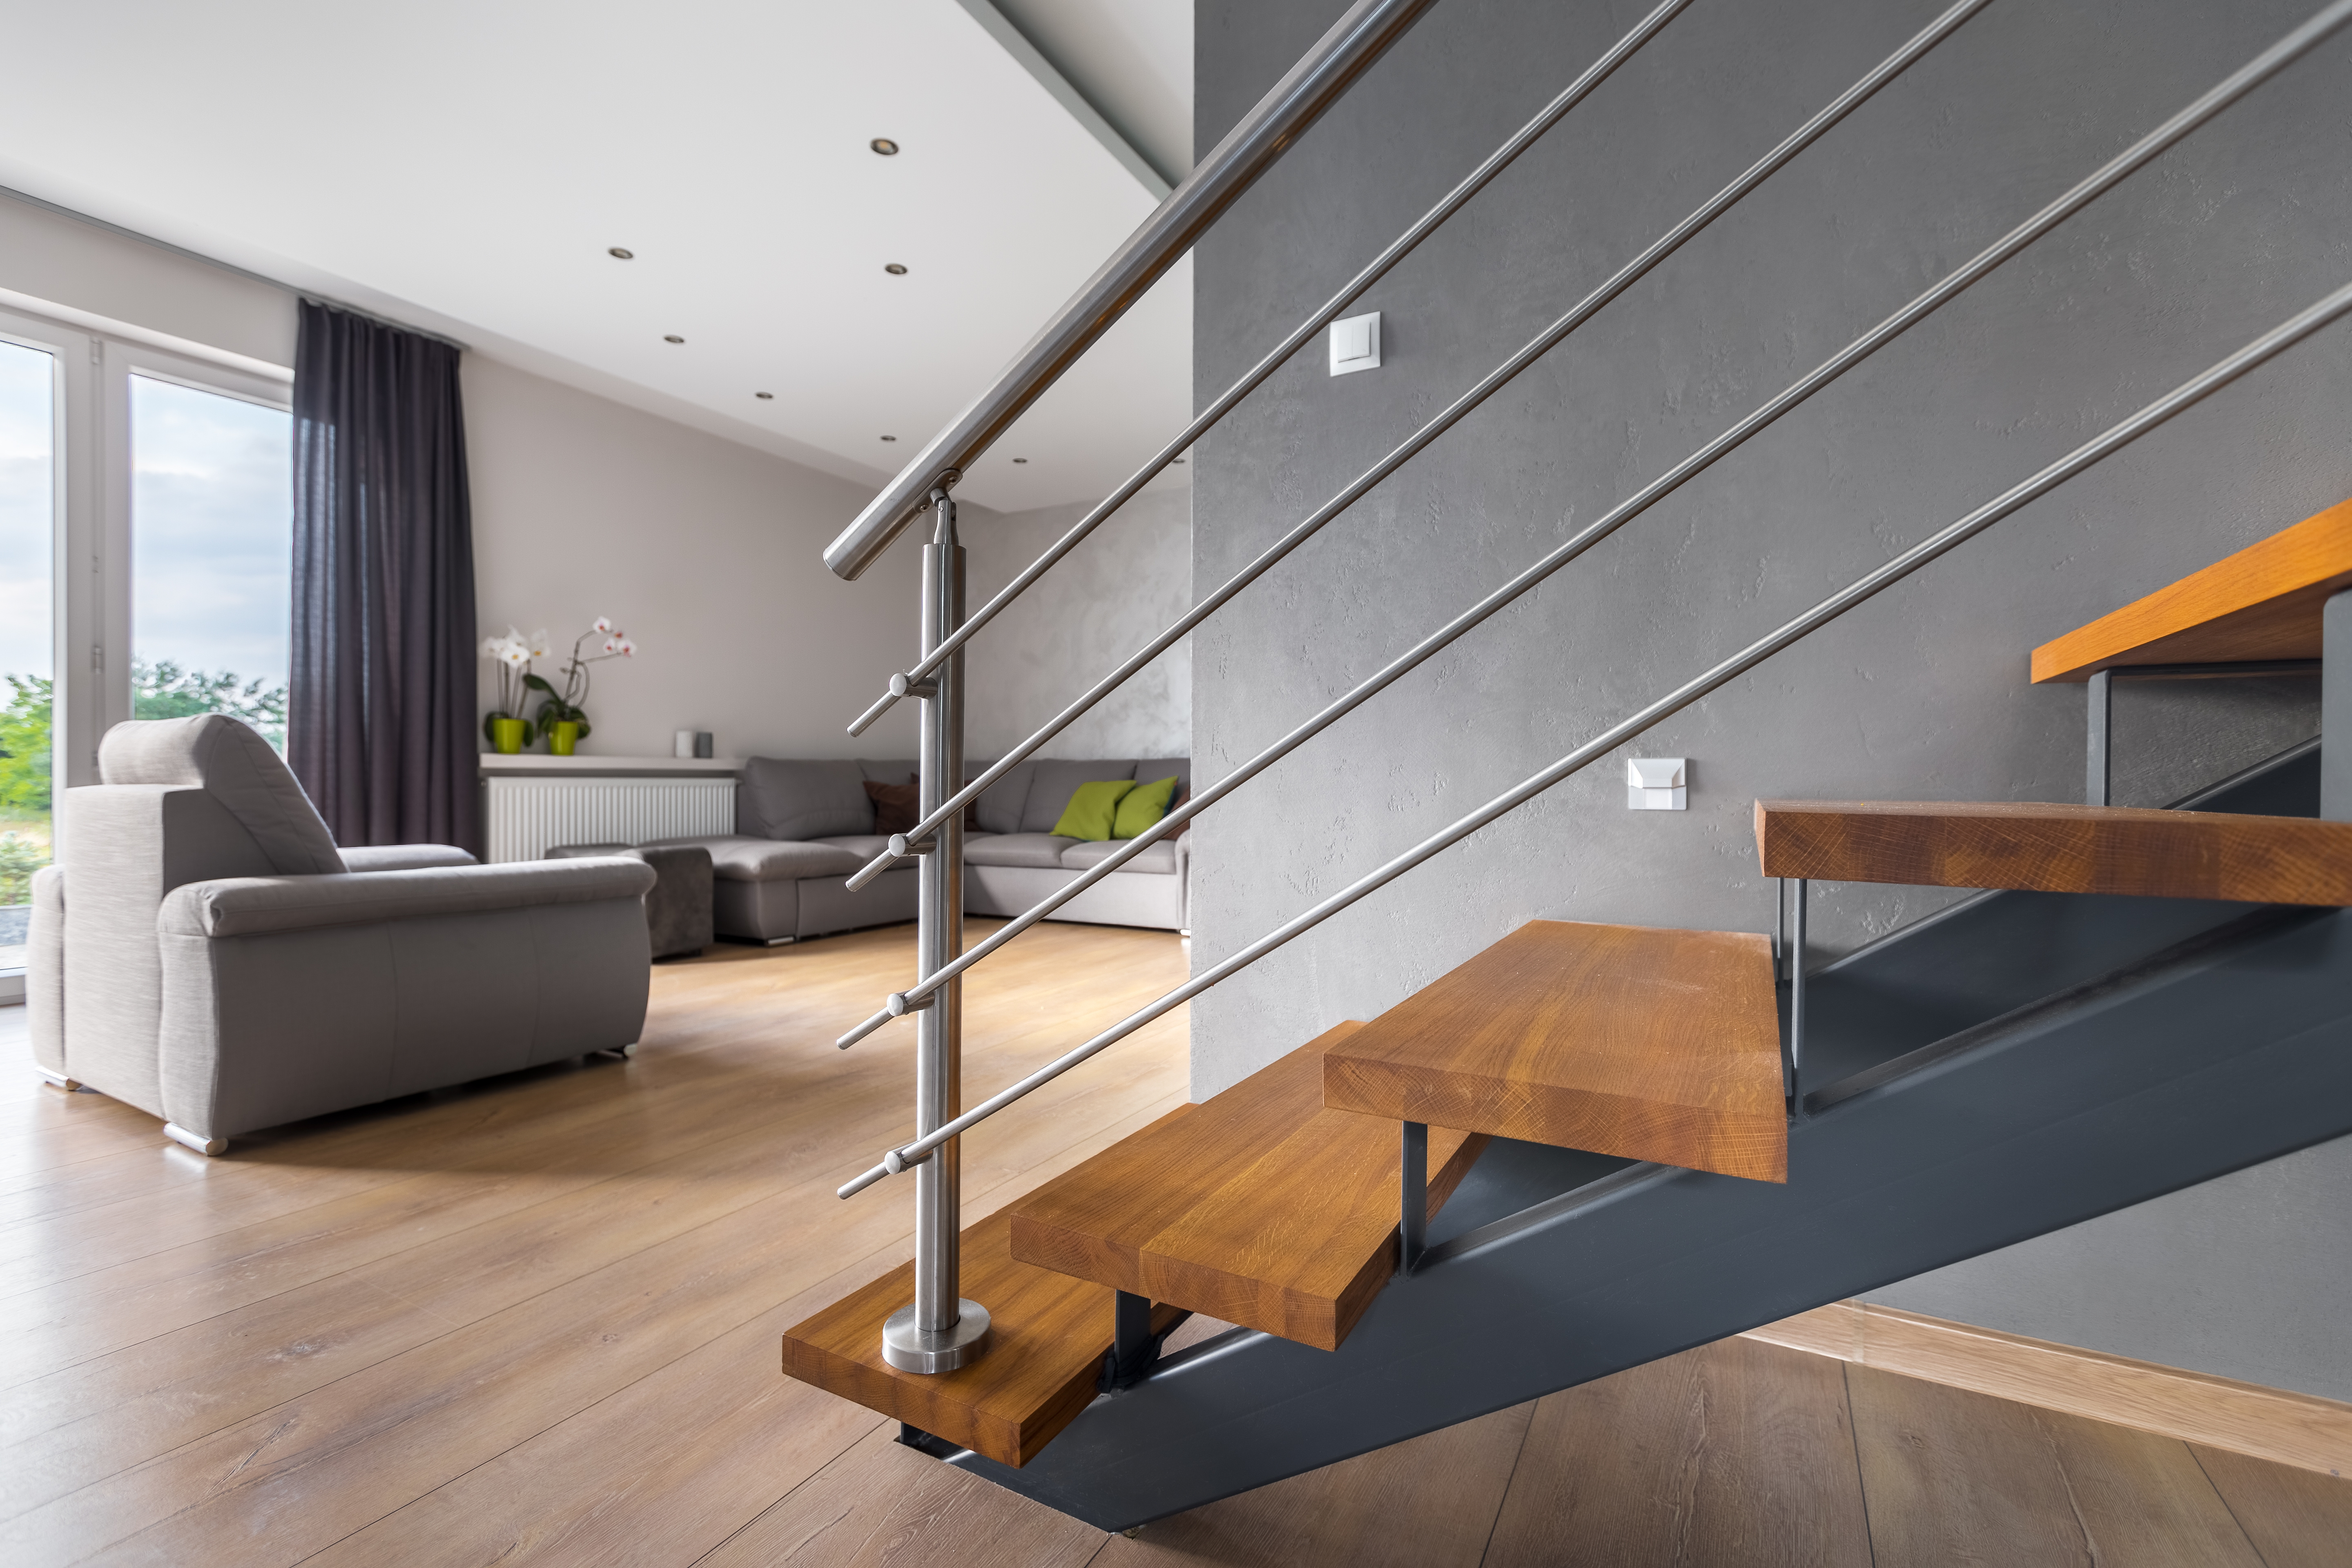 Staircase Railing Styles That Will Elevate Your Design Merit | Staircase Handrail Glass Designs | Frosted Glass | Curved | Glass Baluster | Glass Painting | Glass Etching